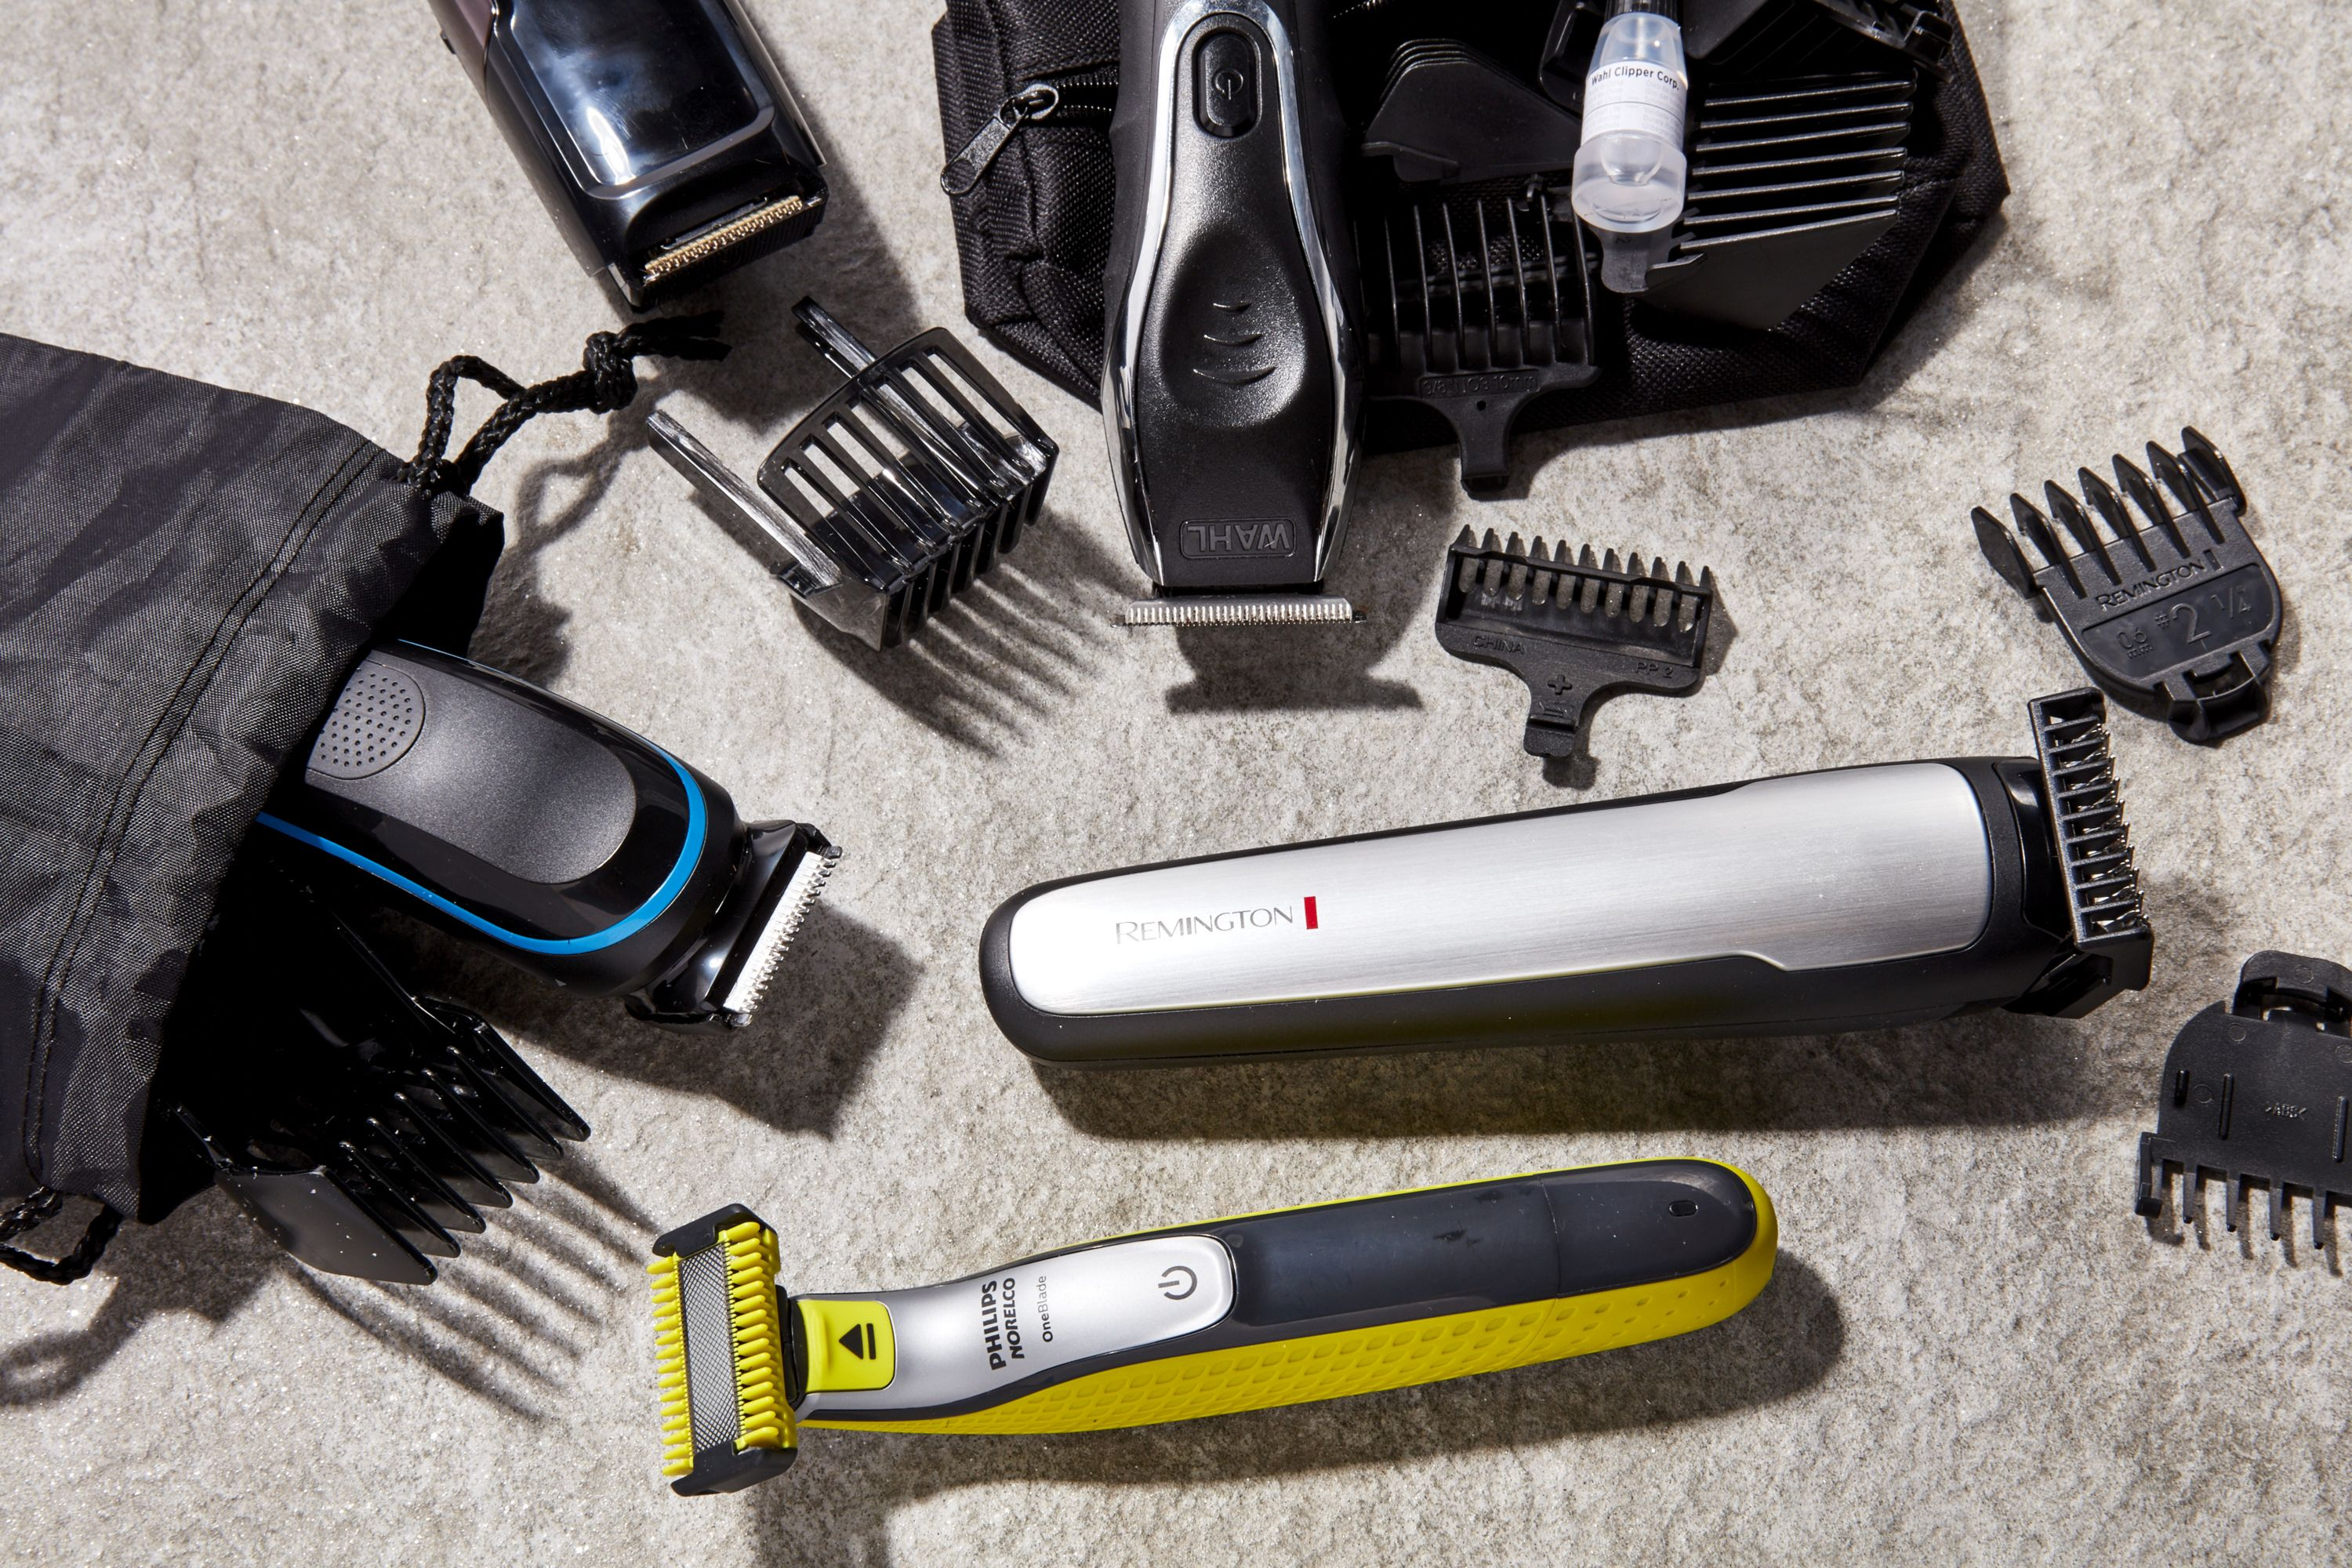 The Best Beard Trimmers for Keeping Your Facial Hair Under Control